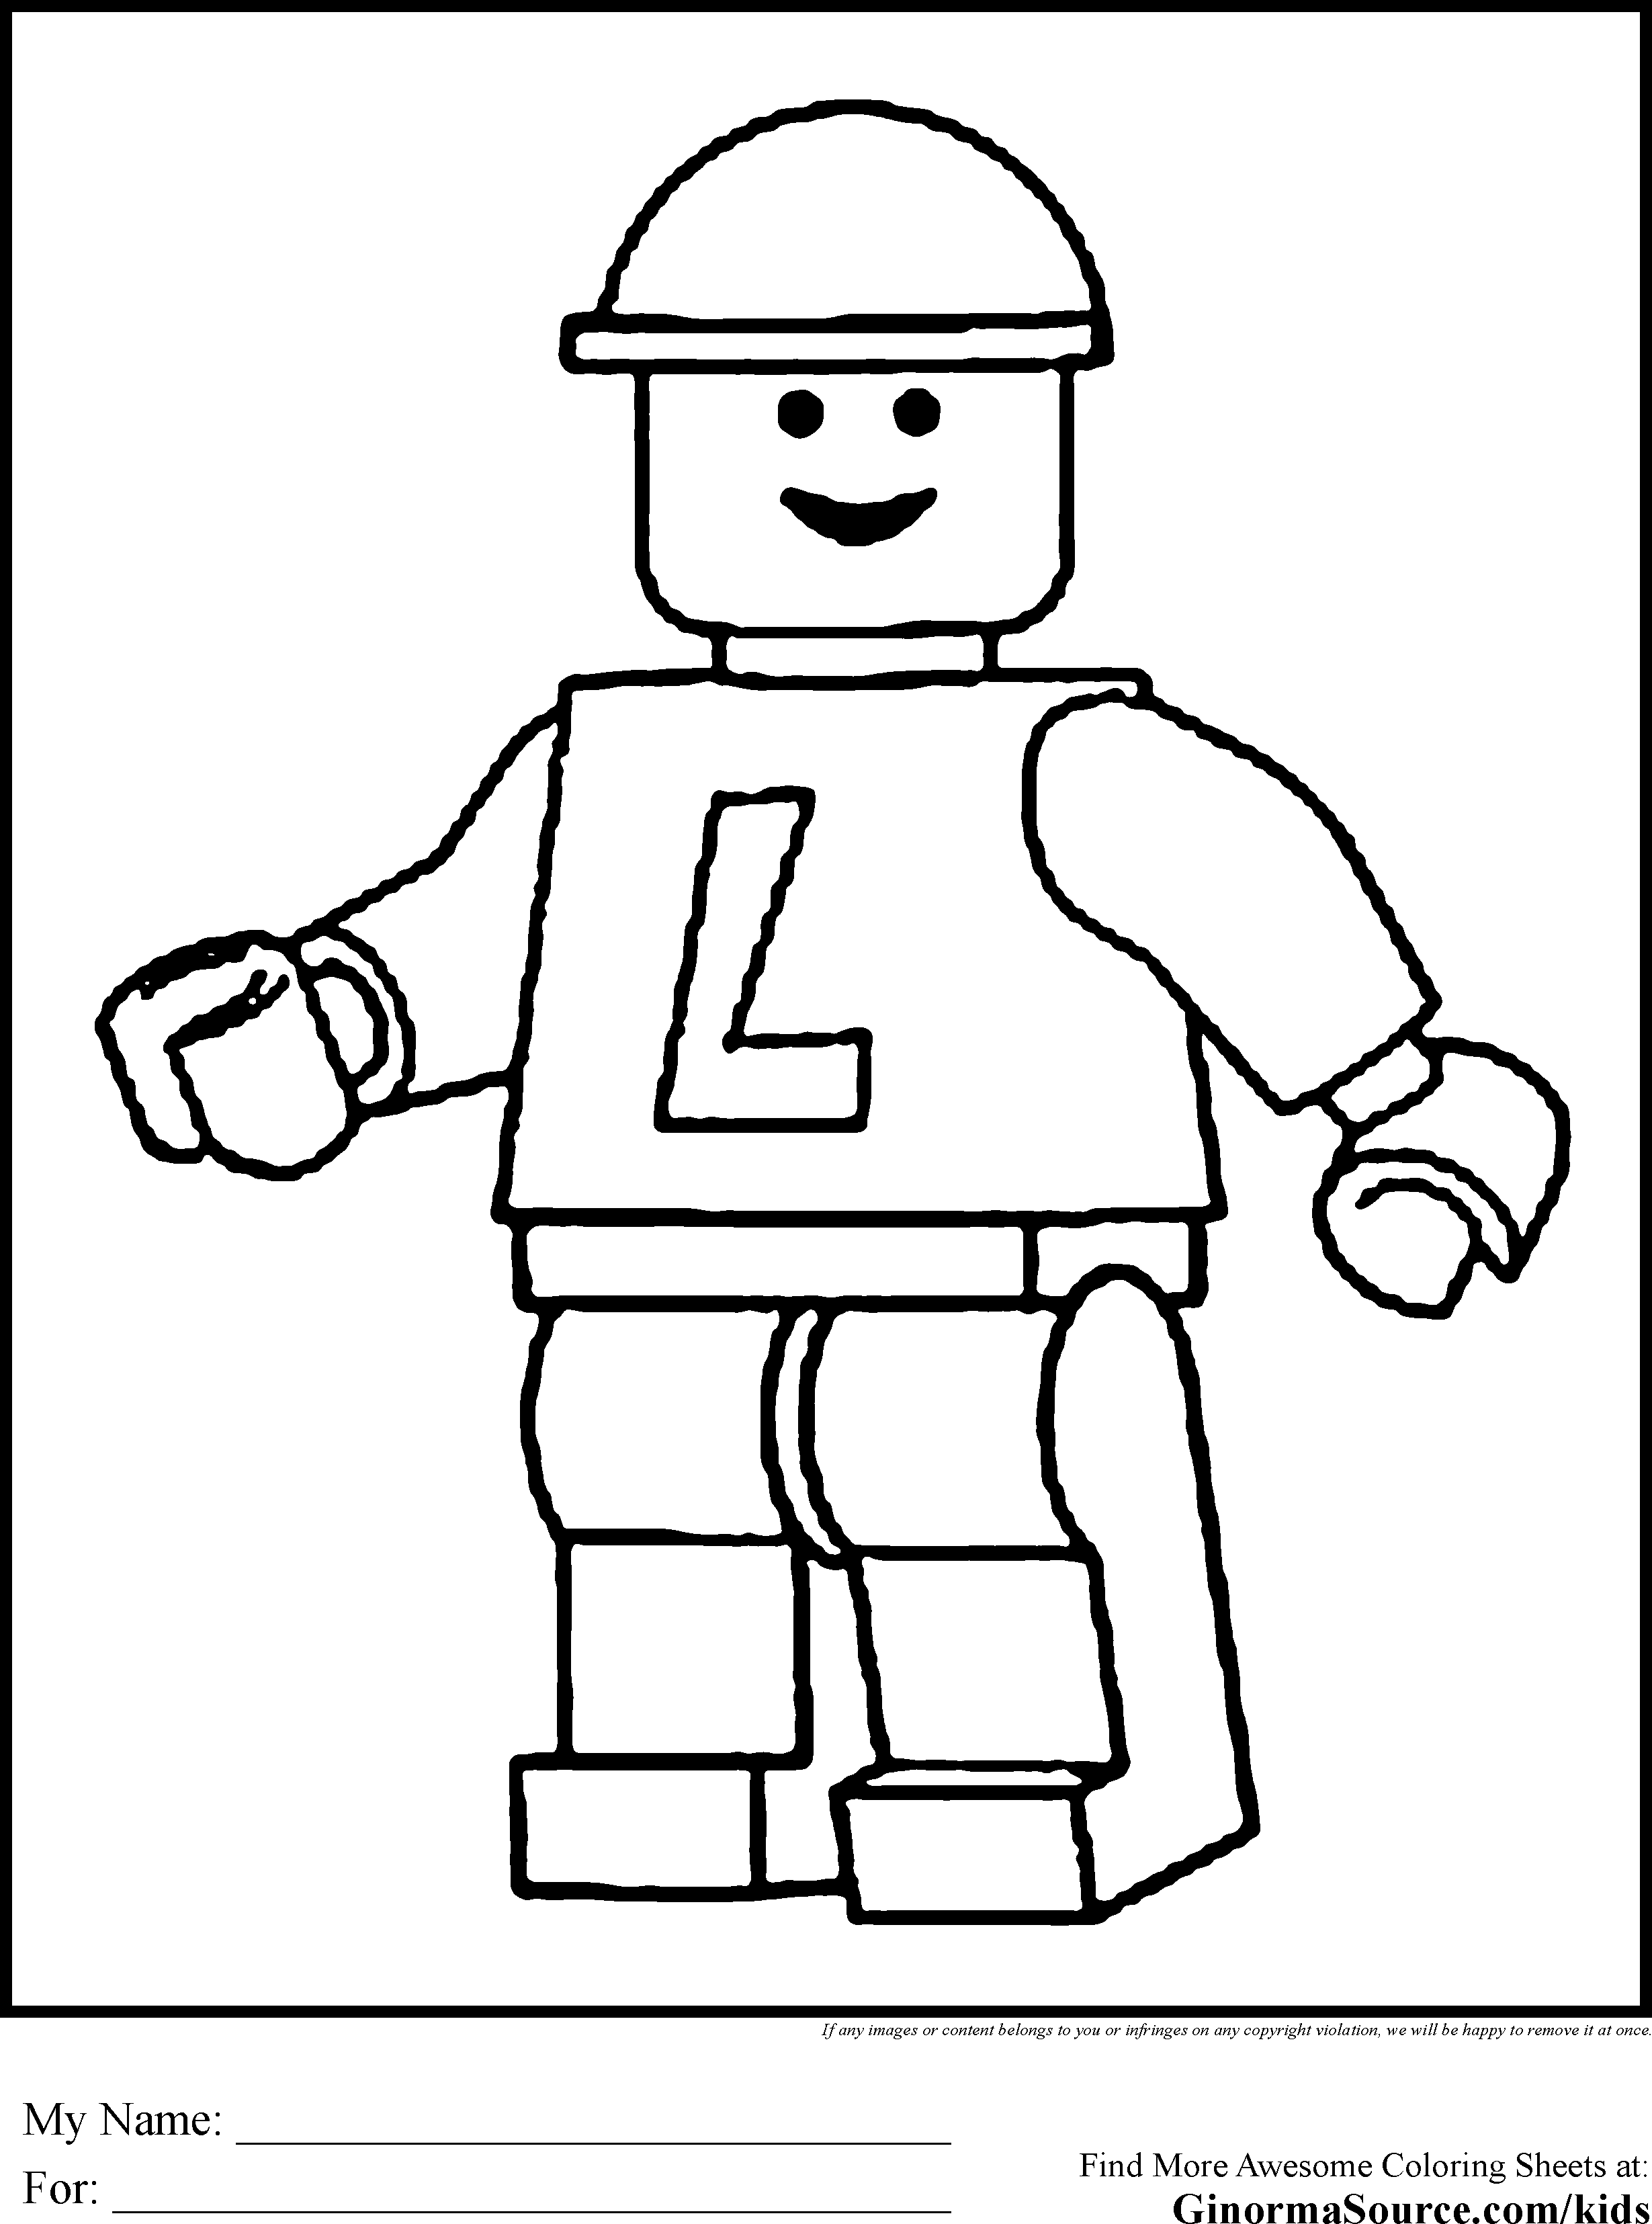 Lego Man Coloring Page For House Cool Coloring Pages And Coloring